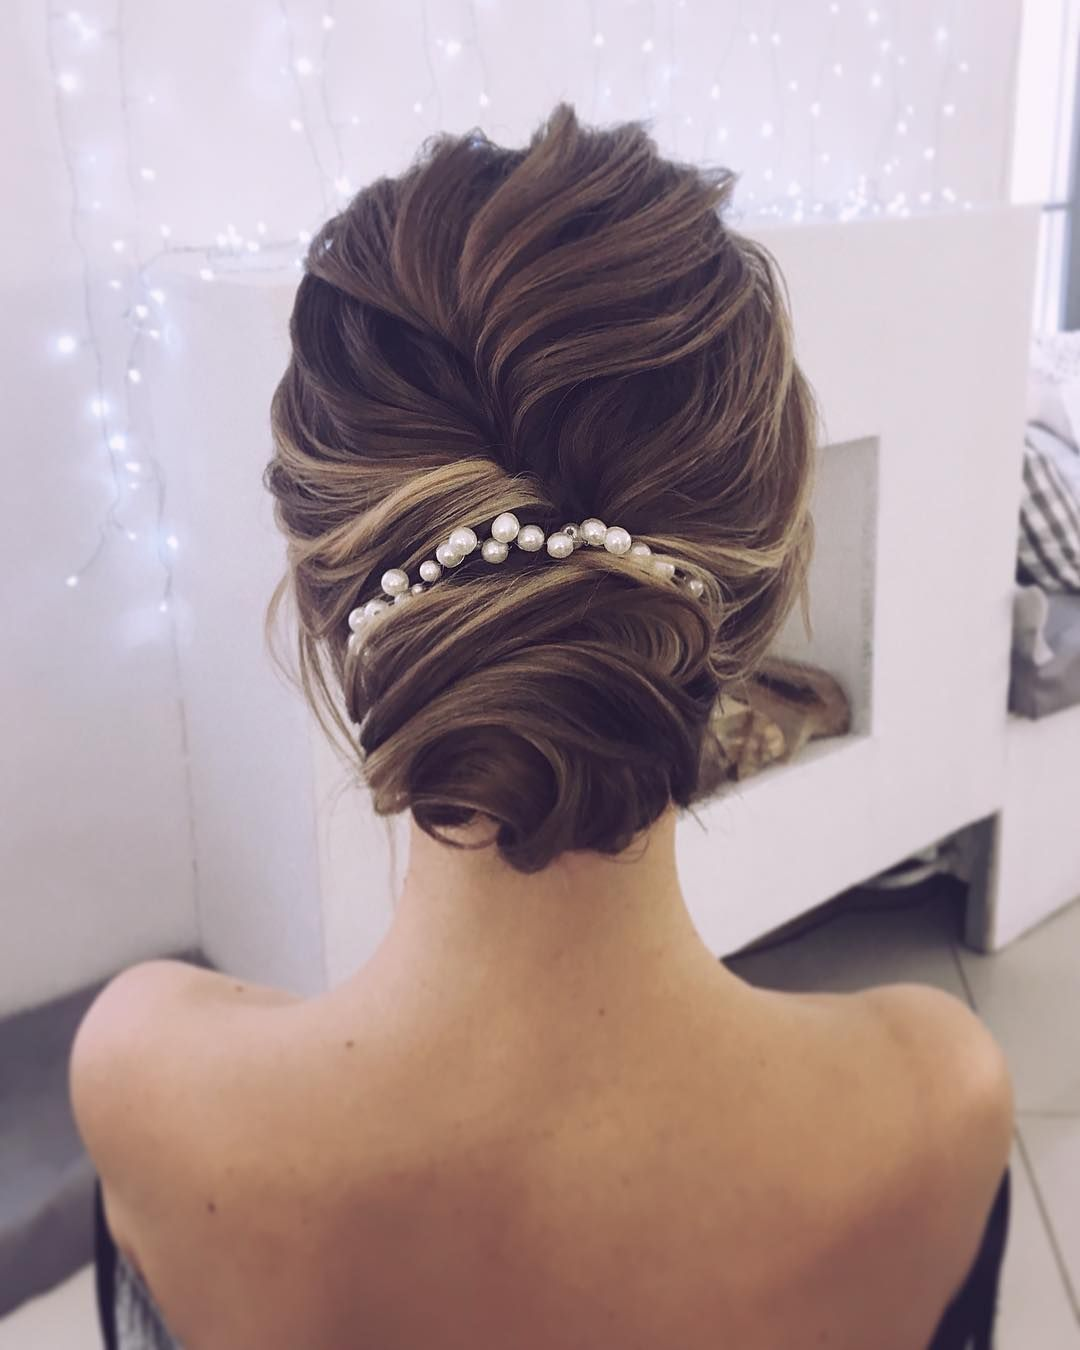 jaw dropping wedding updo hairstyle inspiration | hair